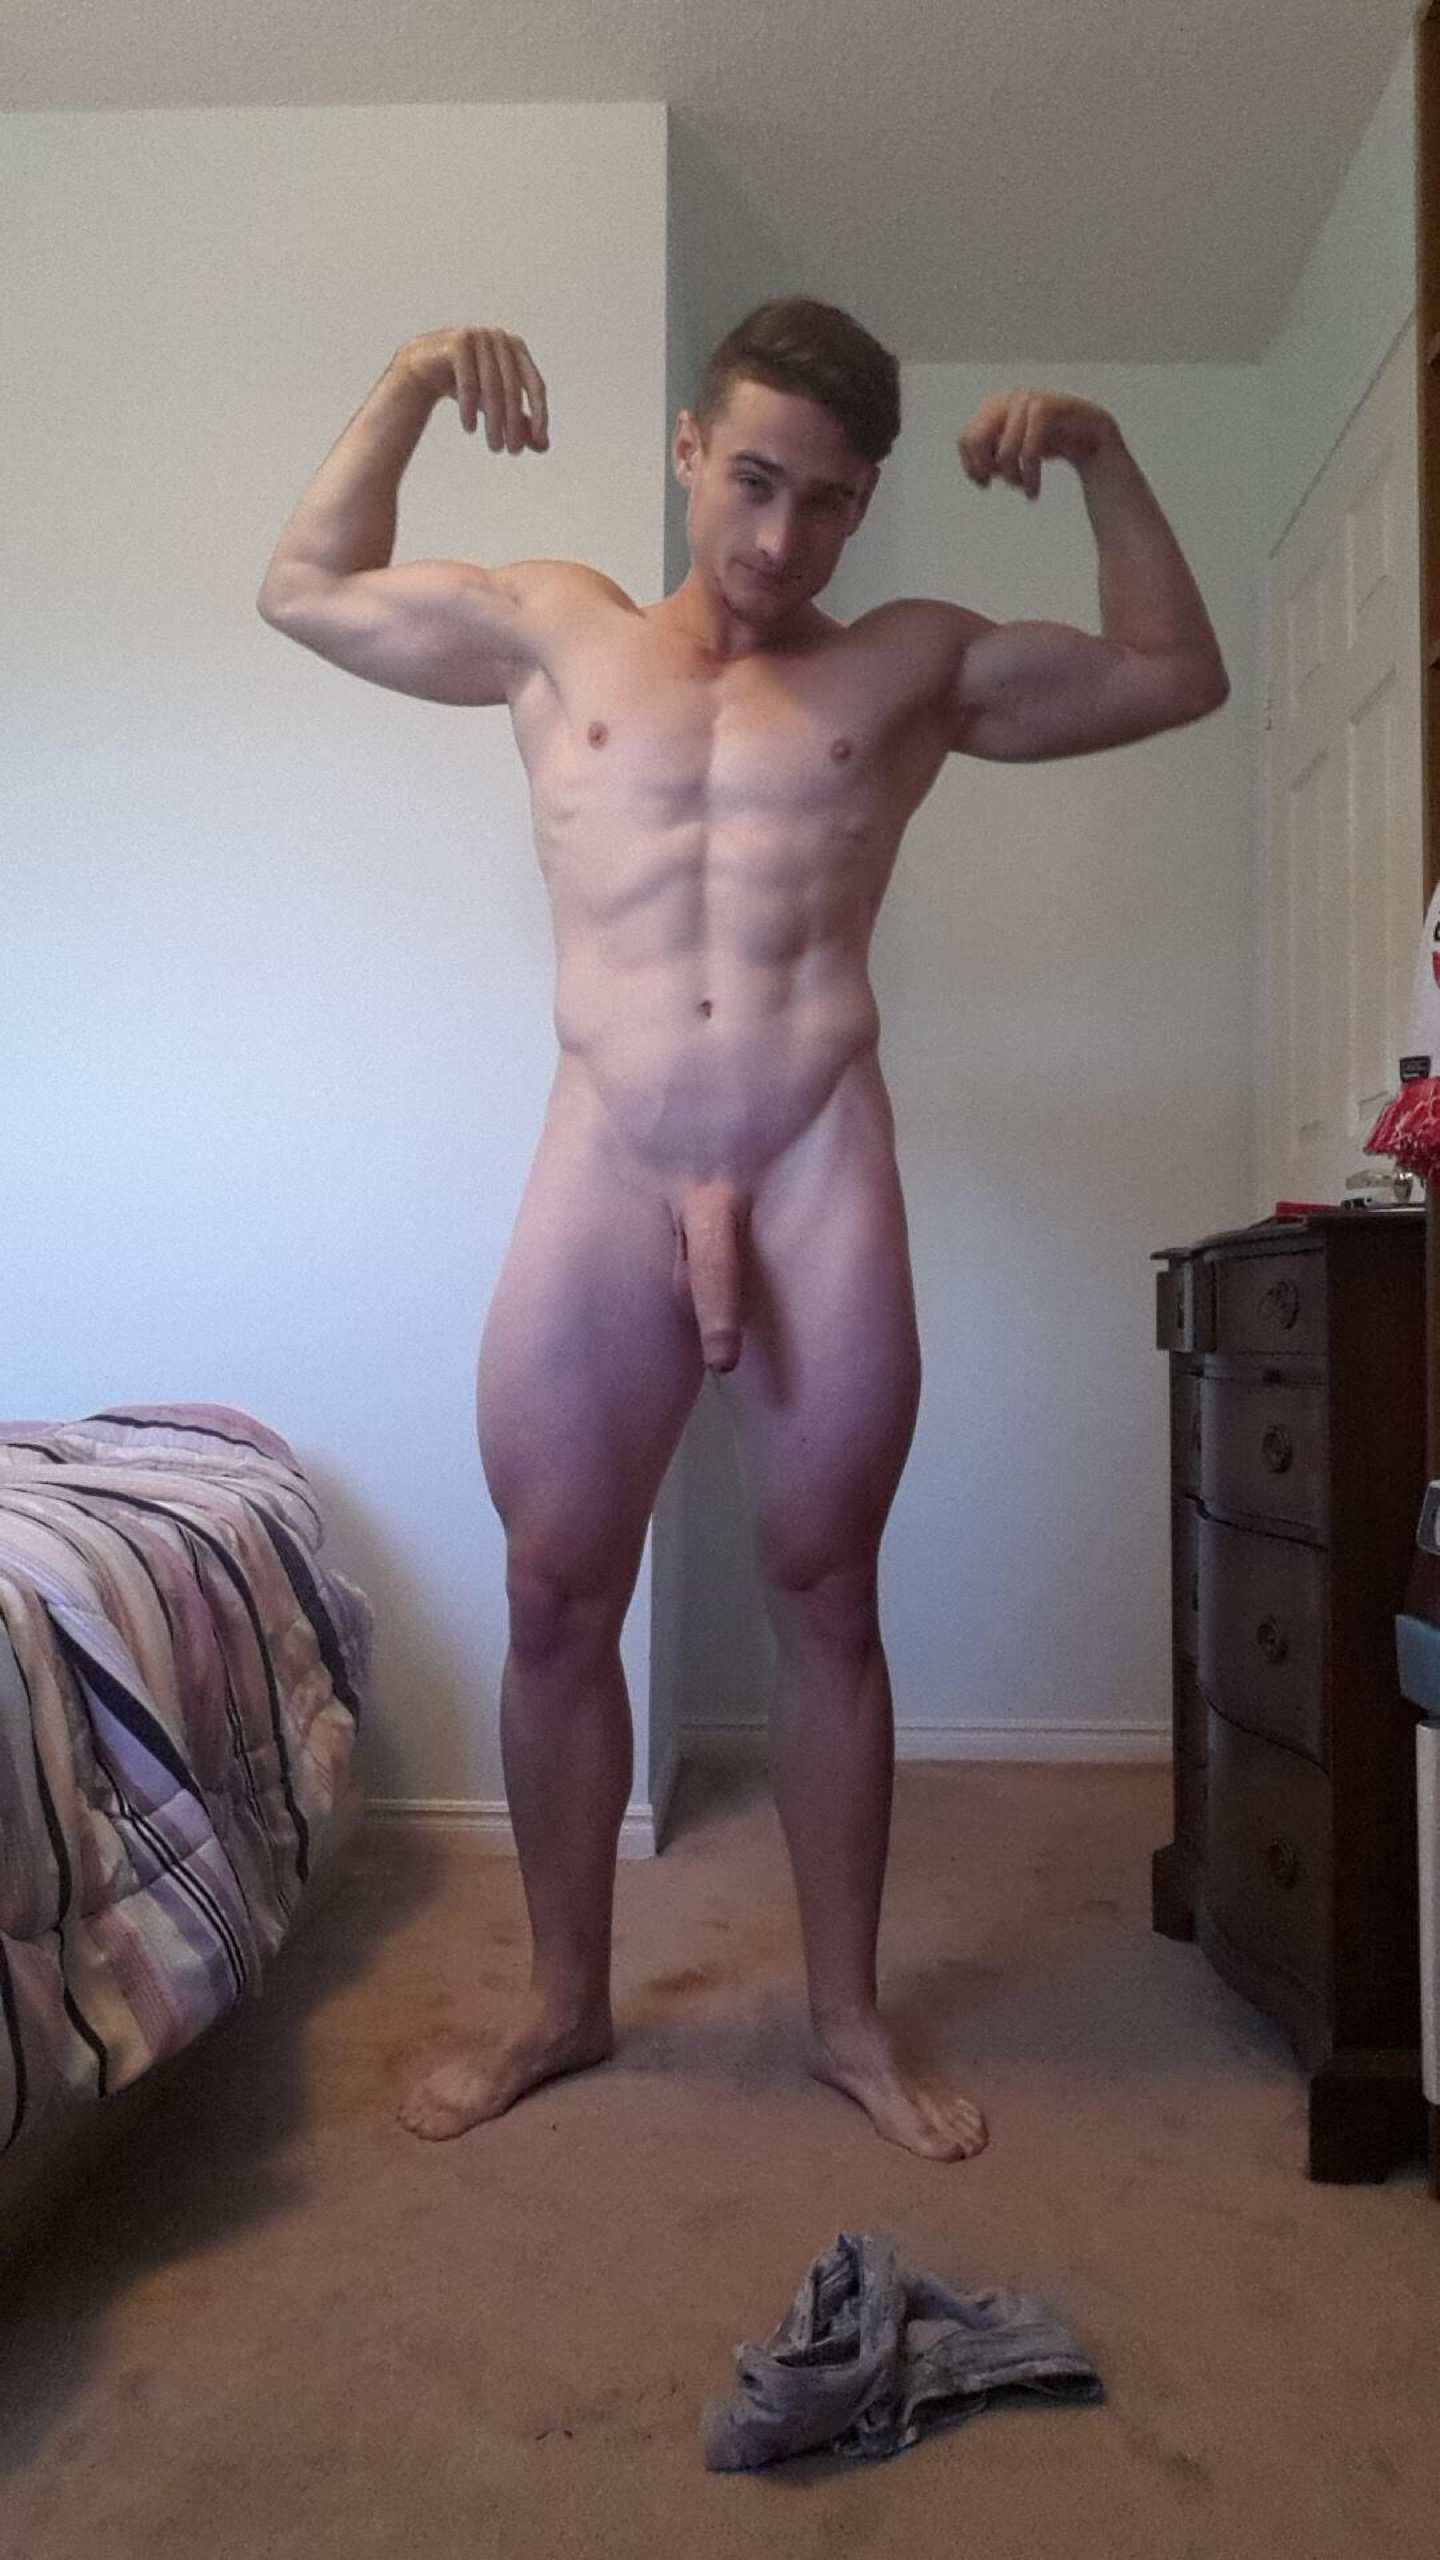 Lads shaved hung cock pics, pubescent sexy girls